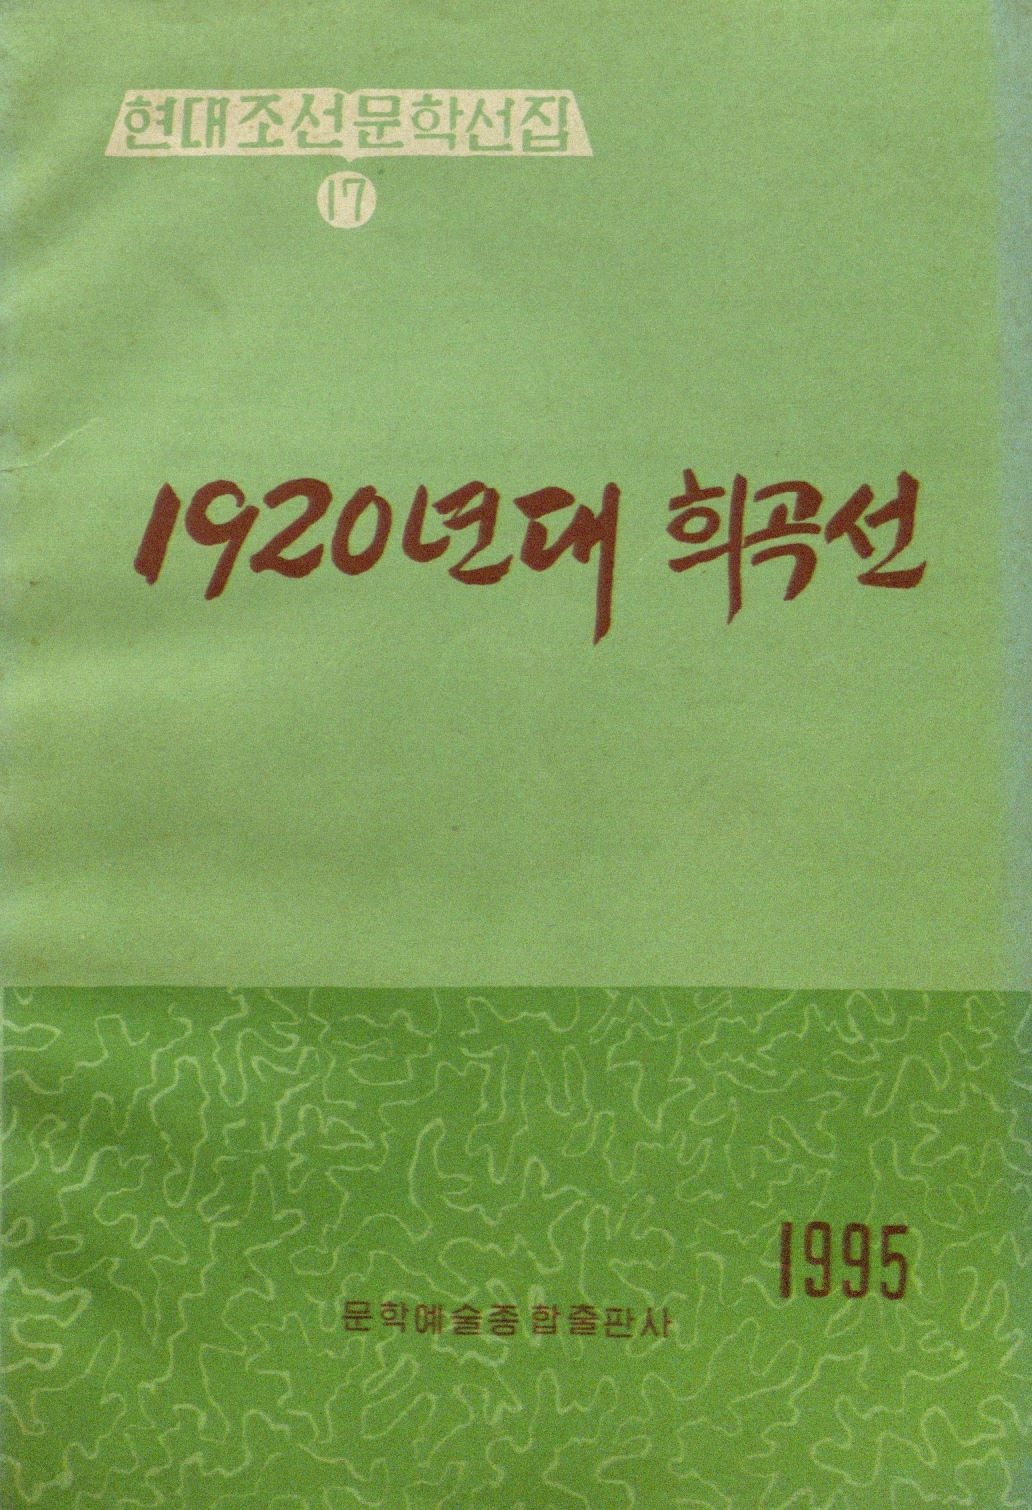 title page of 1920년대 희곡선